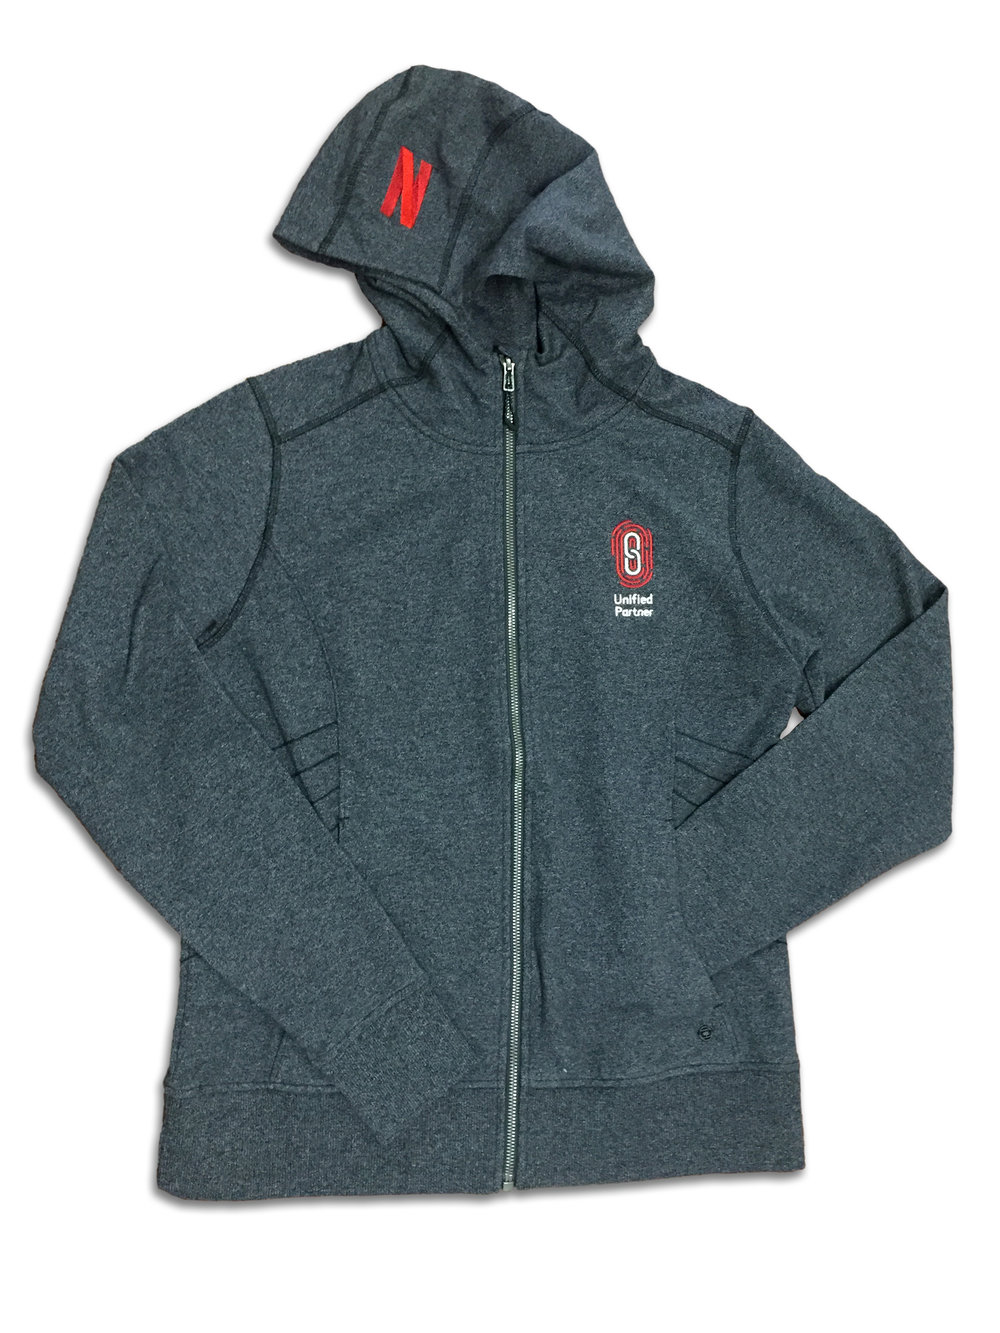 EMBROIDERED PERFORMANCE FLEECE HOODED JACKET